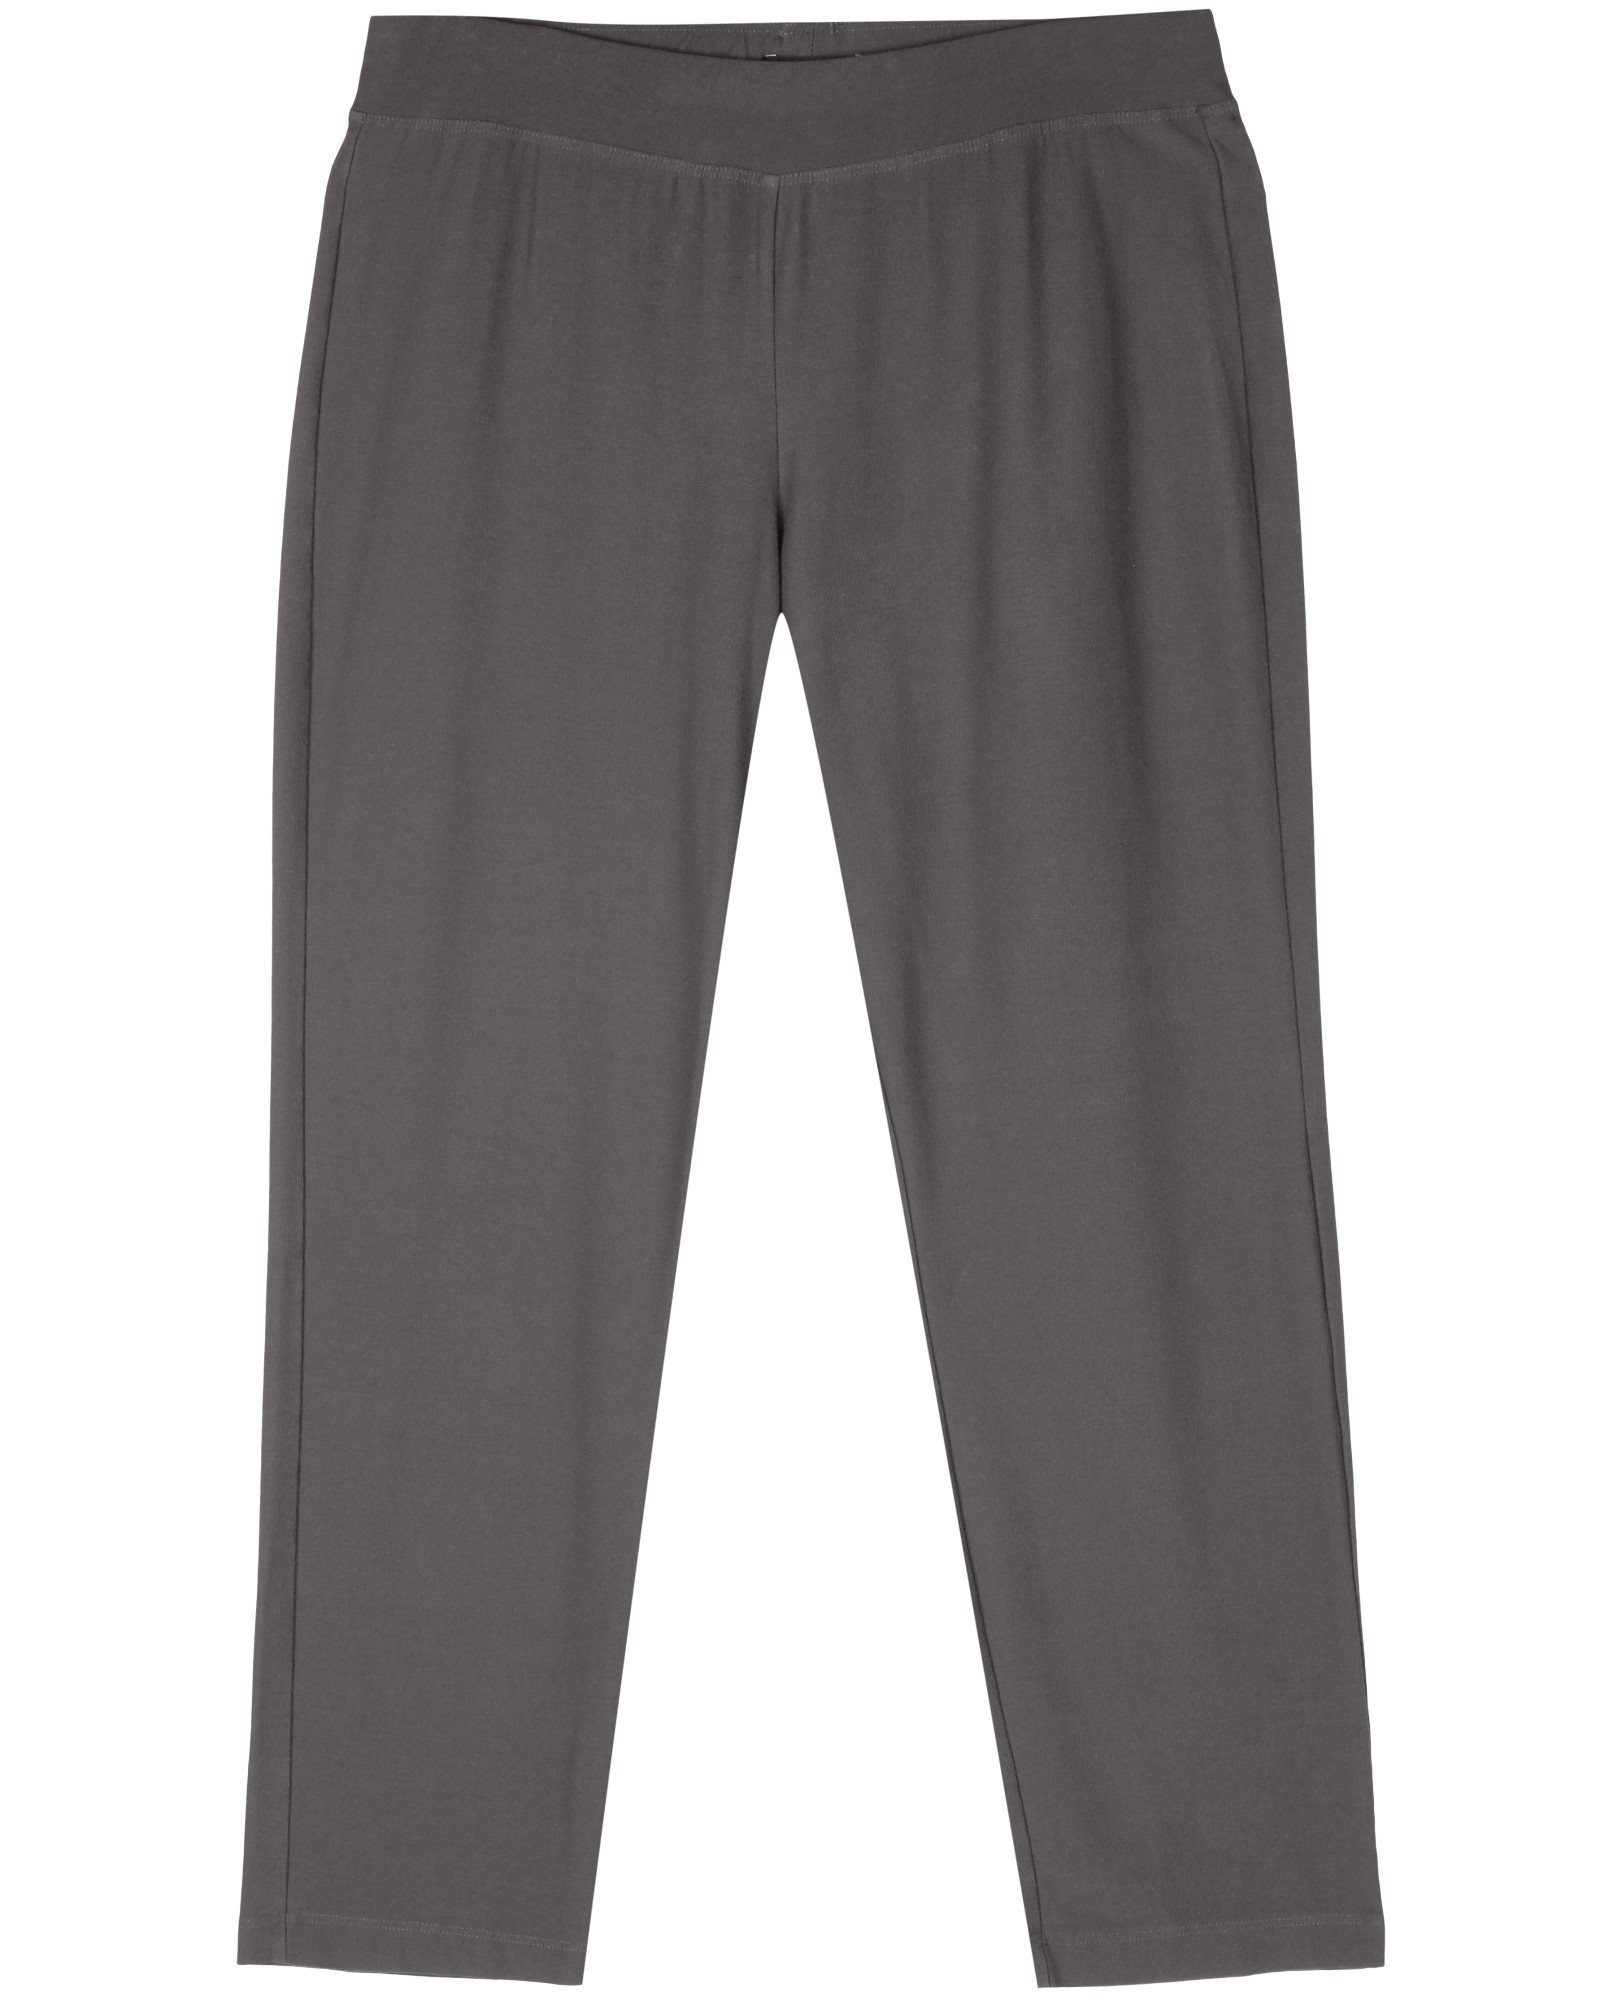 57fe5db7c97b7d Used Washable Stretch Crepe Pant Grey | EILEEN FISHER RENEW